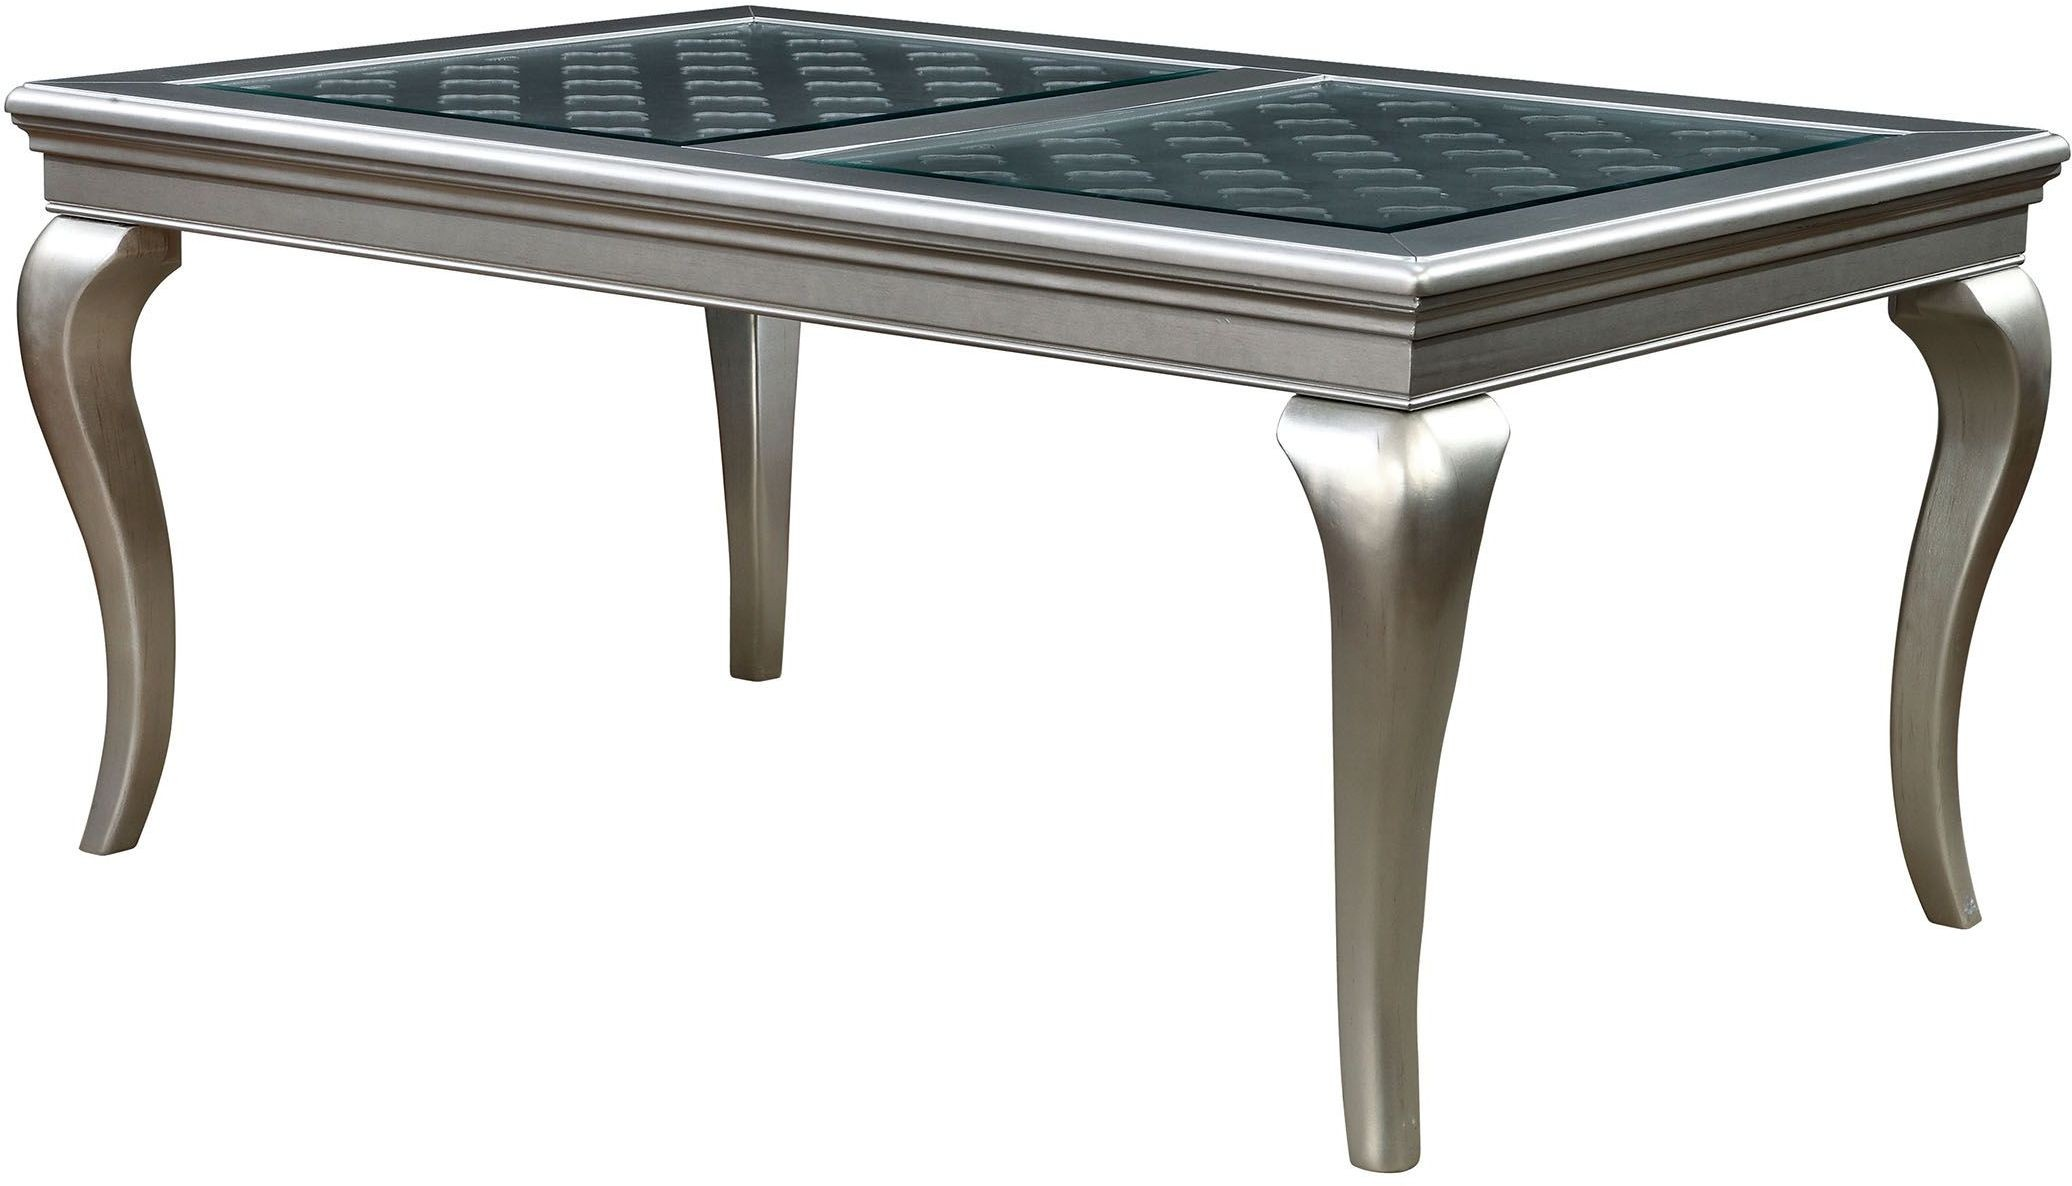 Amina champagne 66 rectangular dining table from for Furniture of america customer service